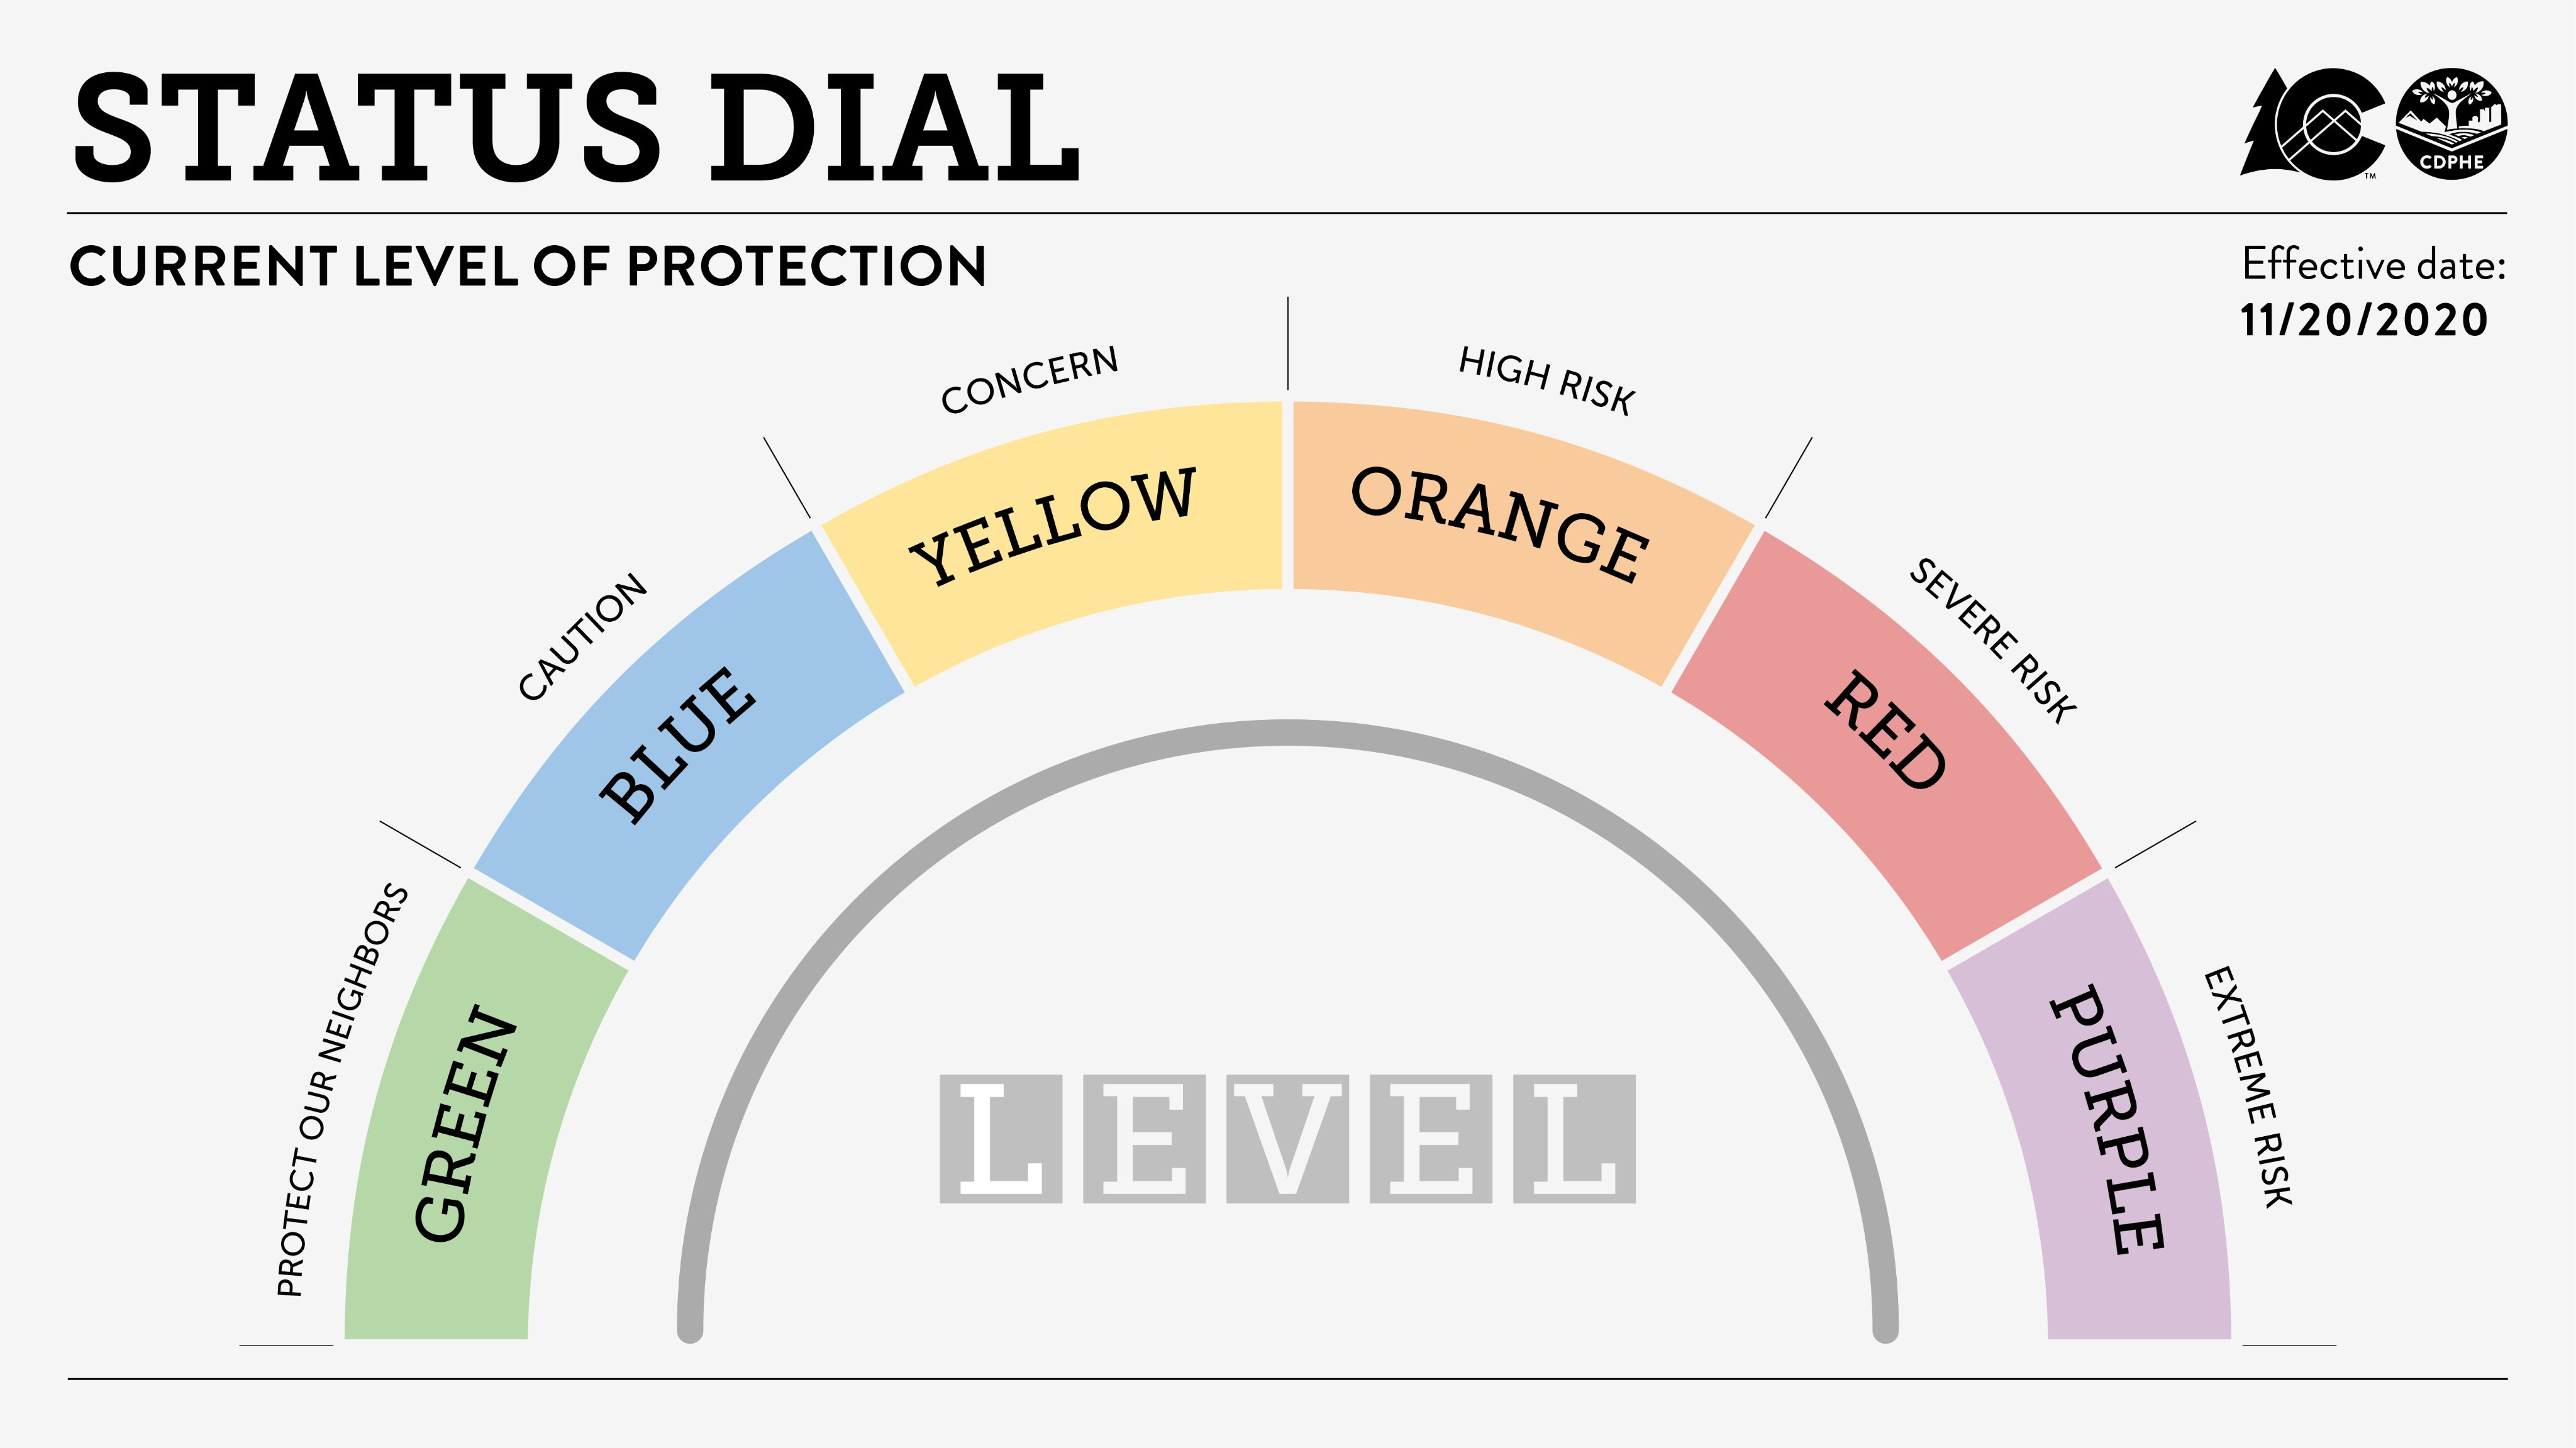 Image of the Status Dial: Current Level of Protection released by Governor Jared Polis for the state of Colorado, Green = Protect your Neighbors, Blue = Caution, Yellow = Concern, Red = Severe Risk, Purple = Extreme Risk. Effective 11/20/20